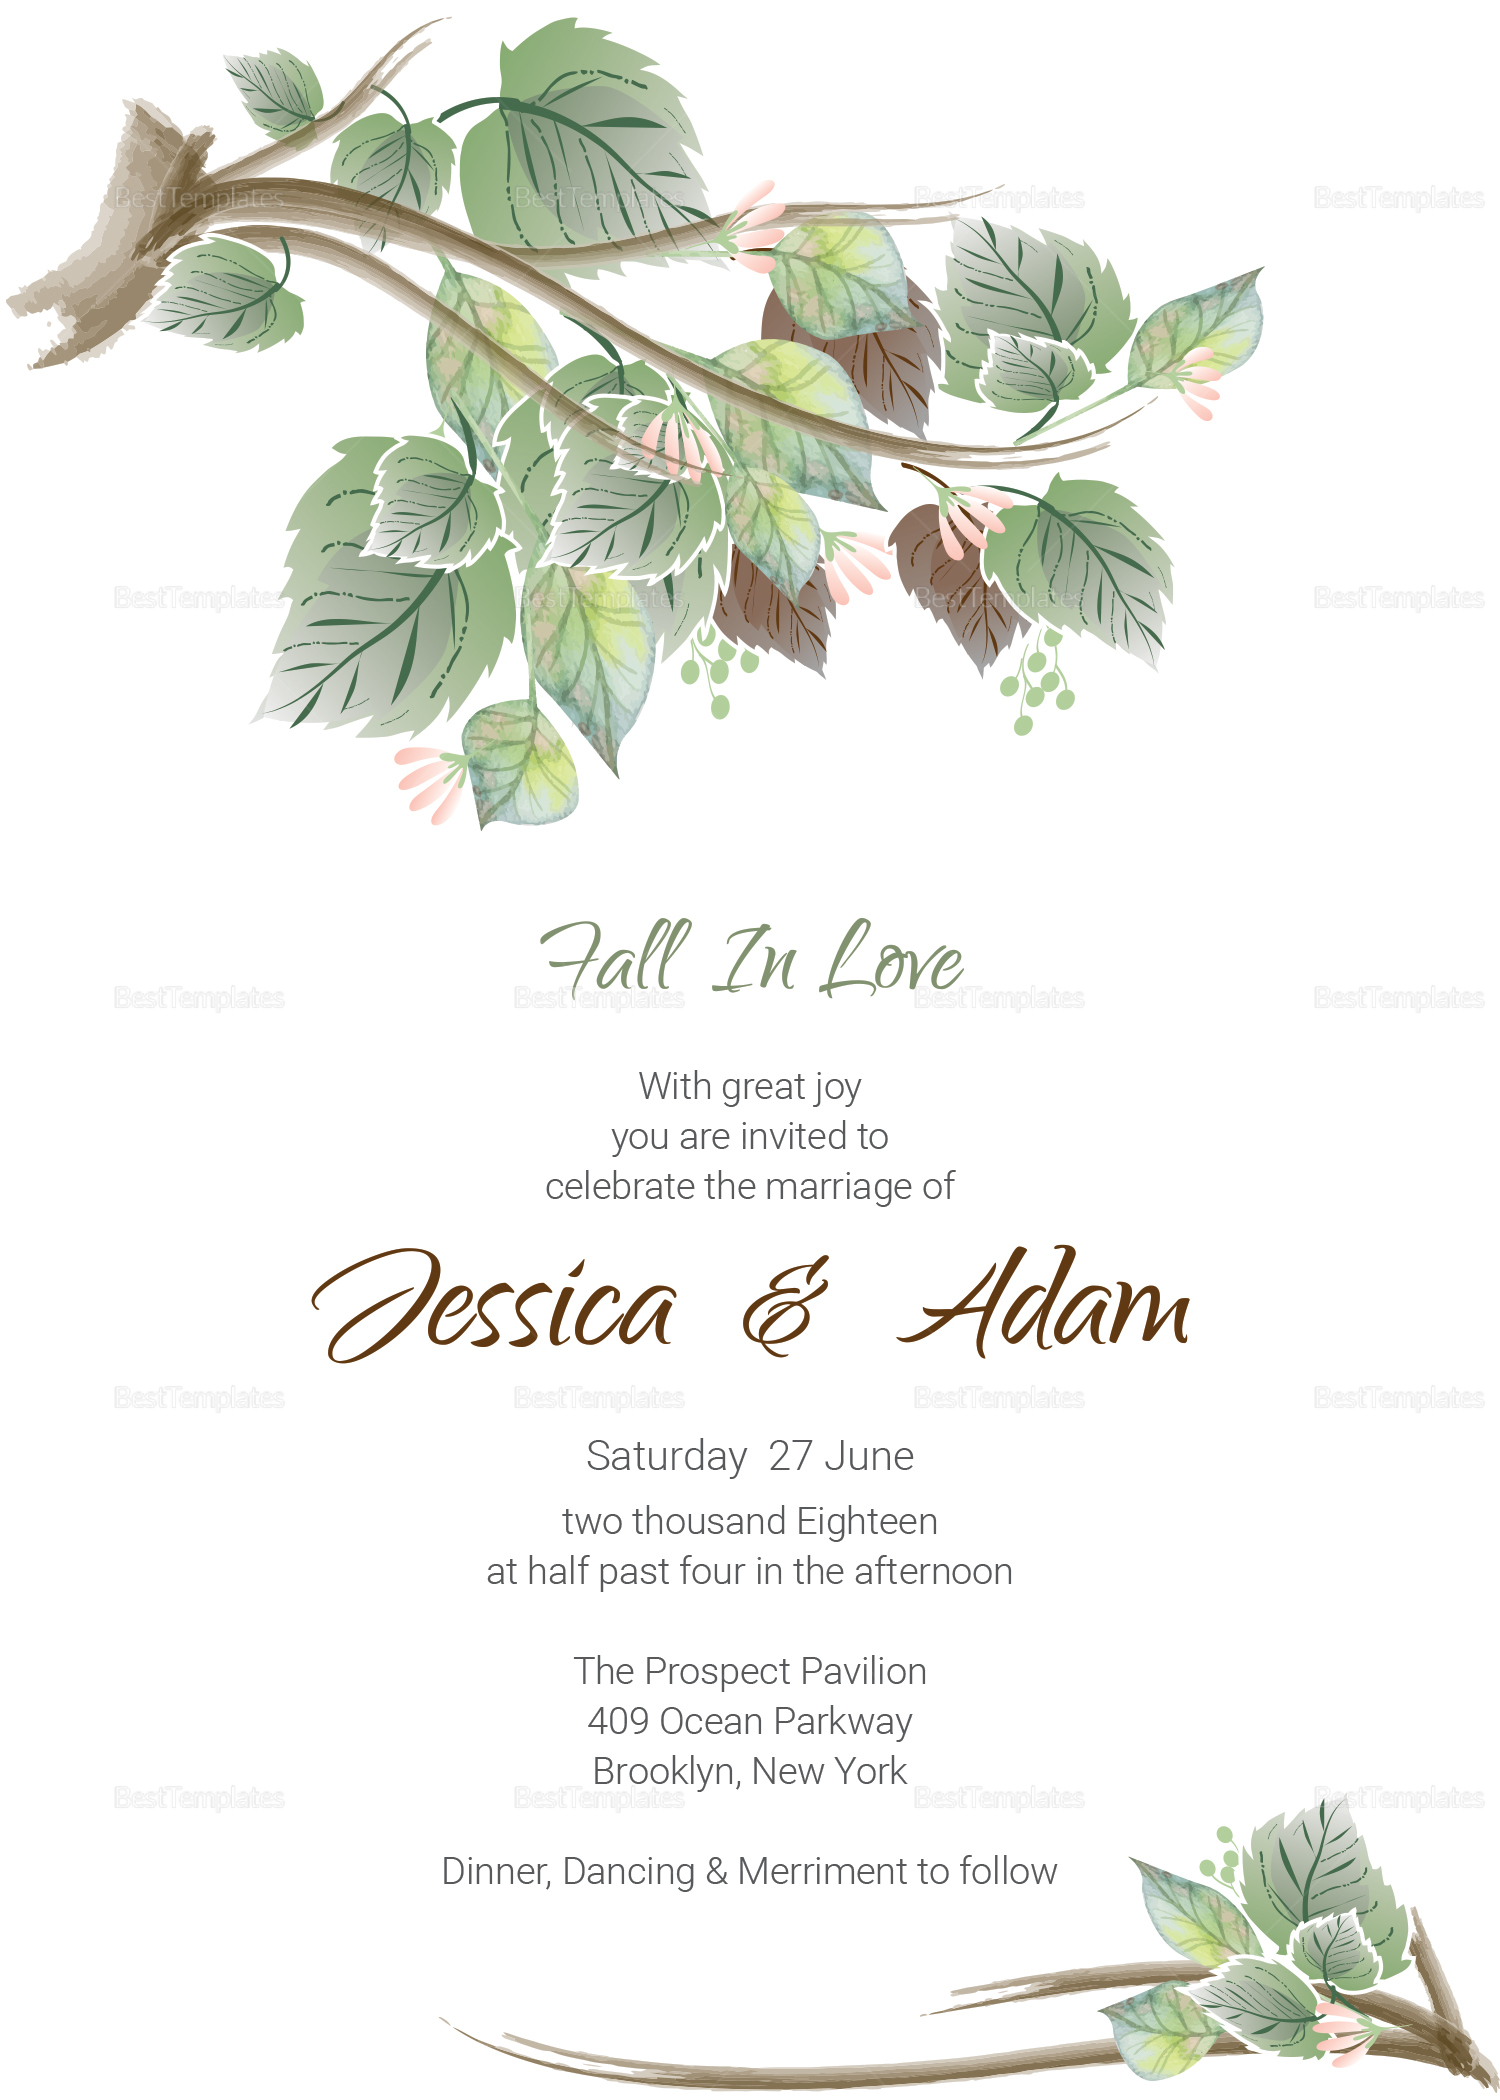 Fall Floral Wedding Invitation Card